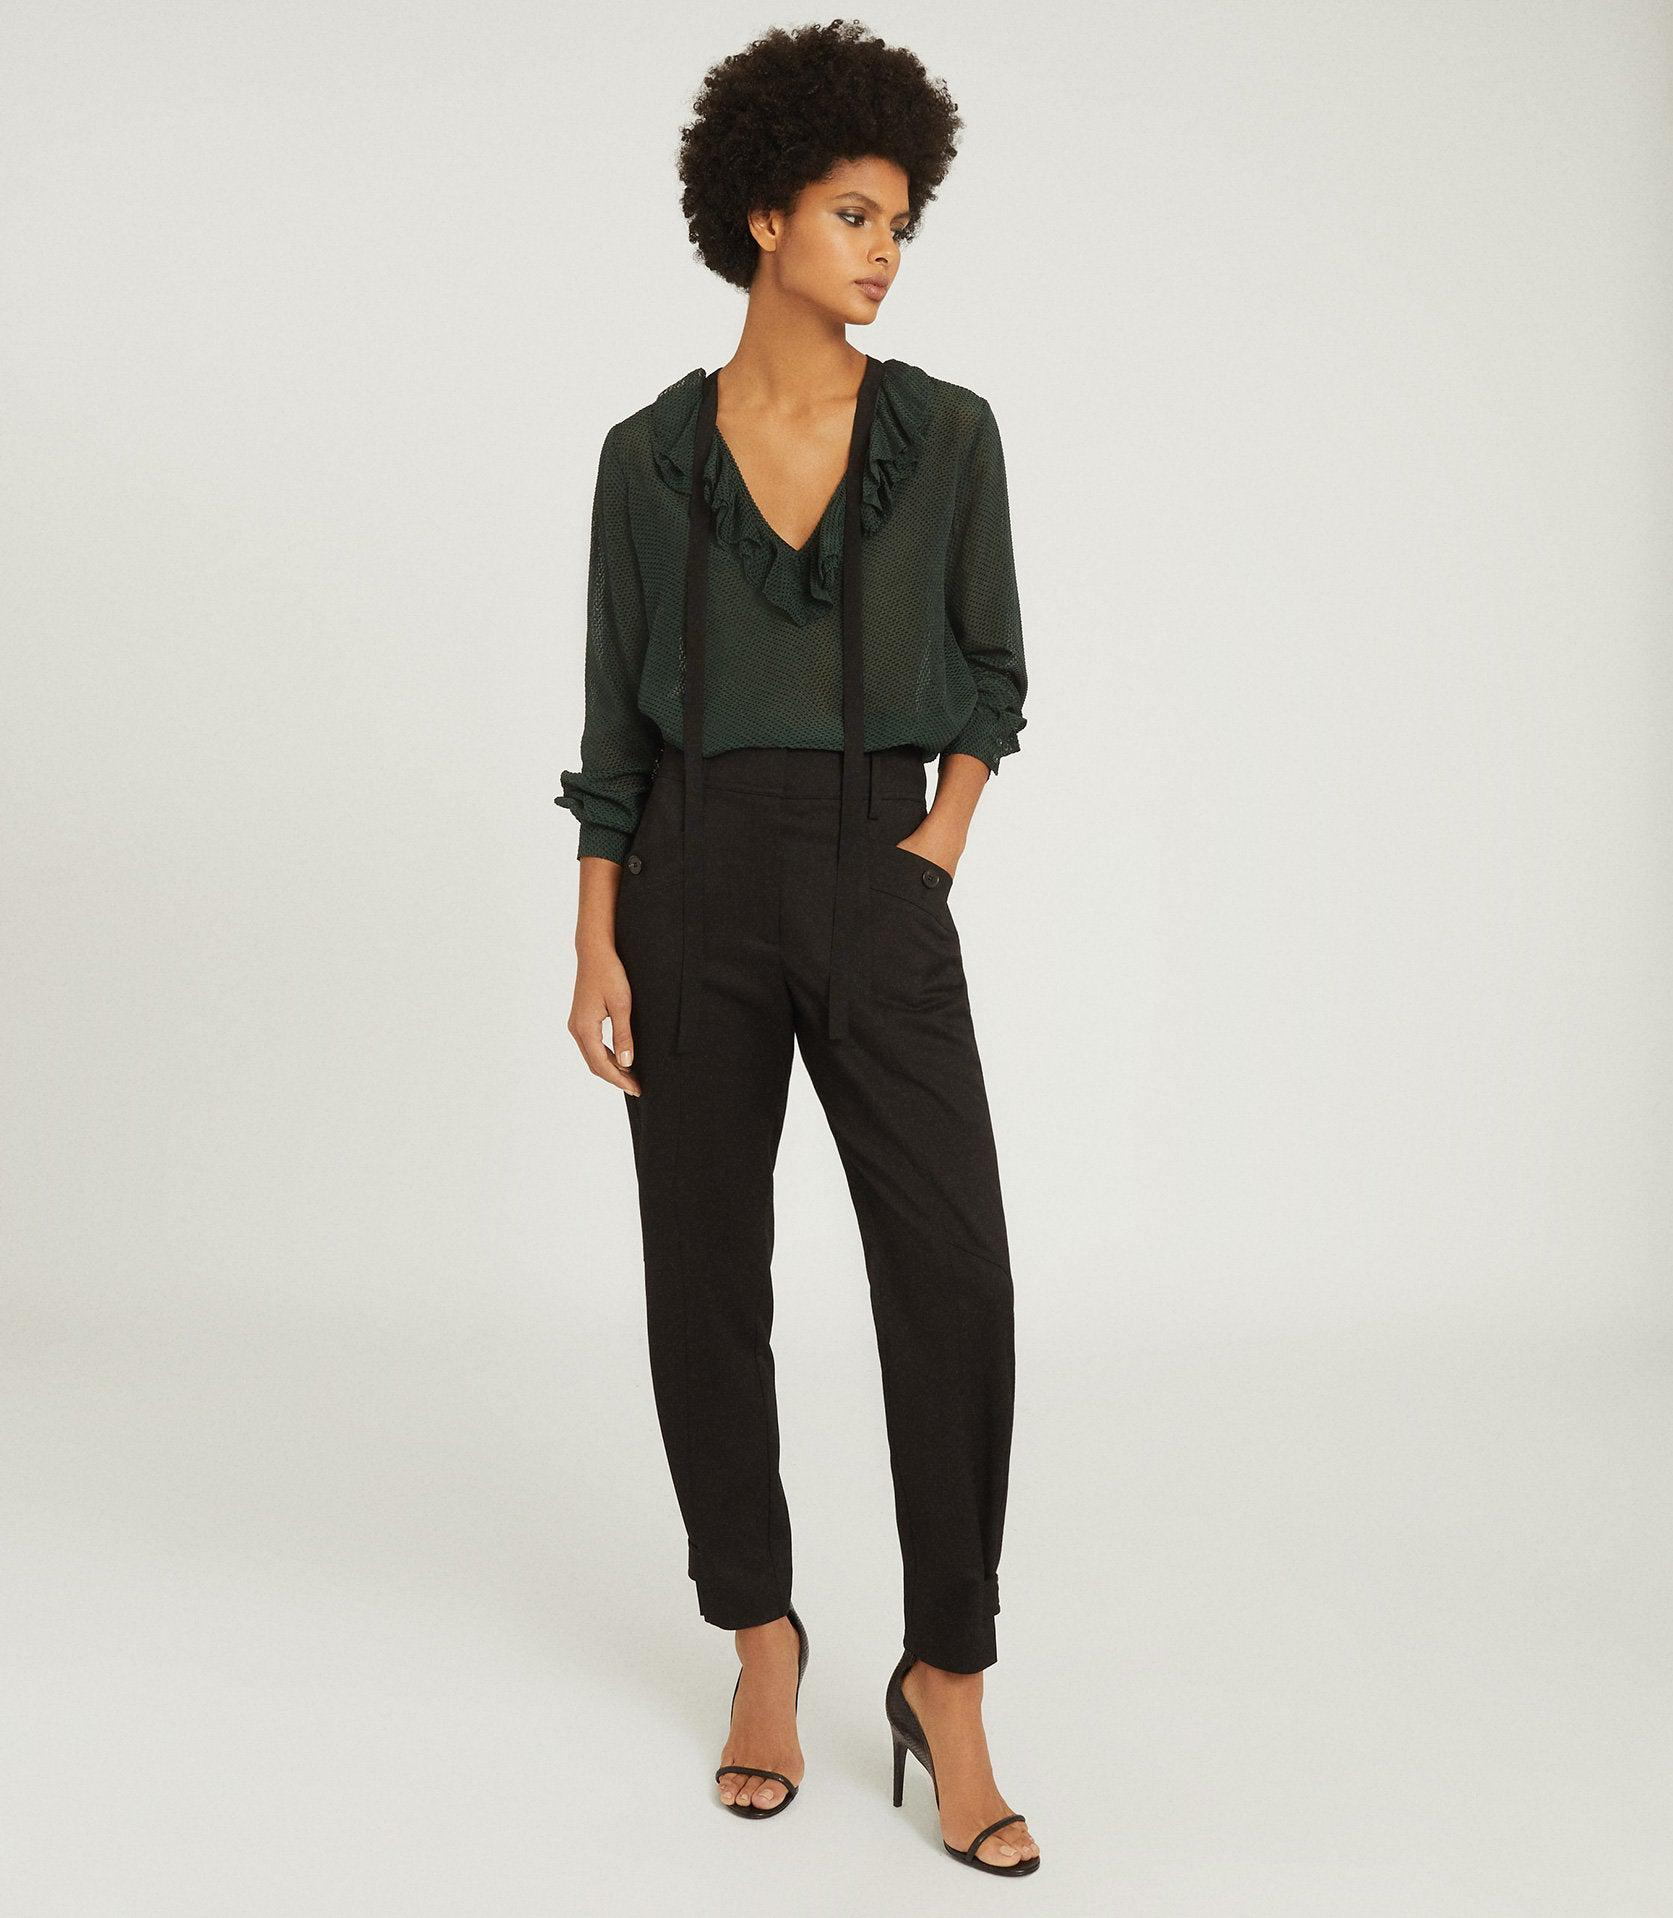 MACKENZIE - TEXTURED BLOUSE WITH BOW DETAIL